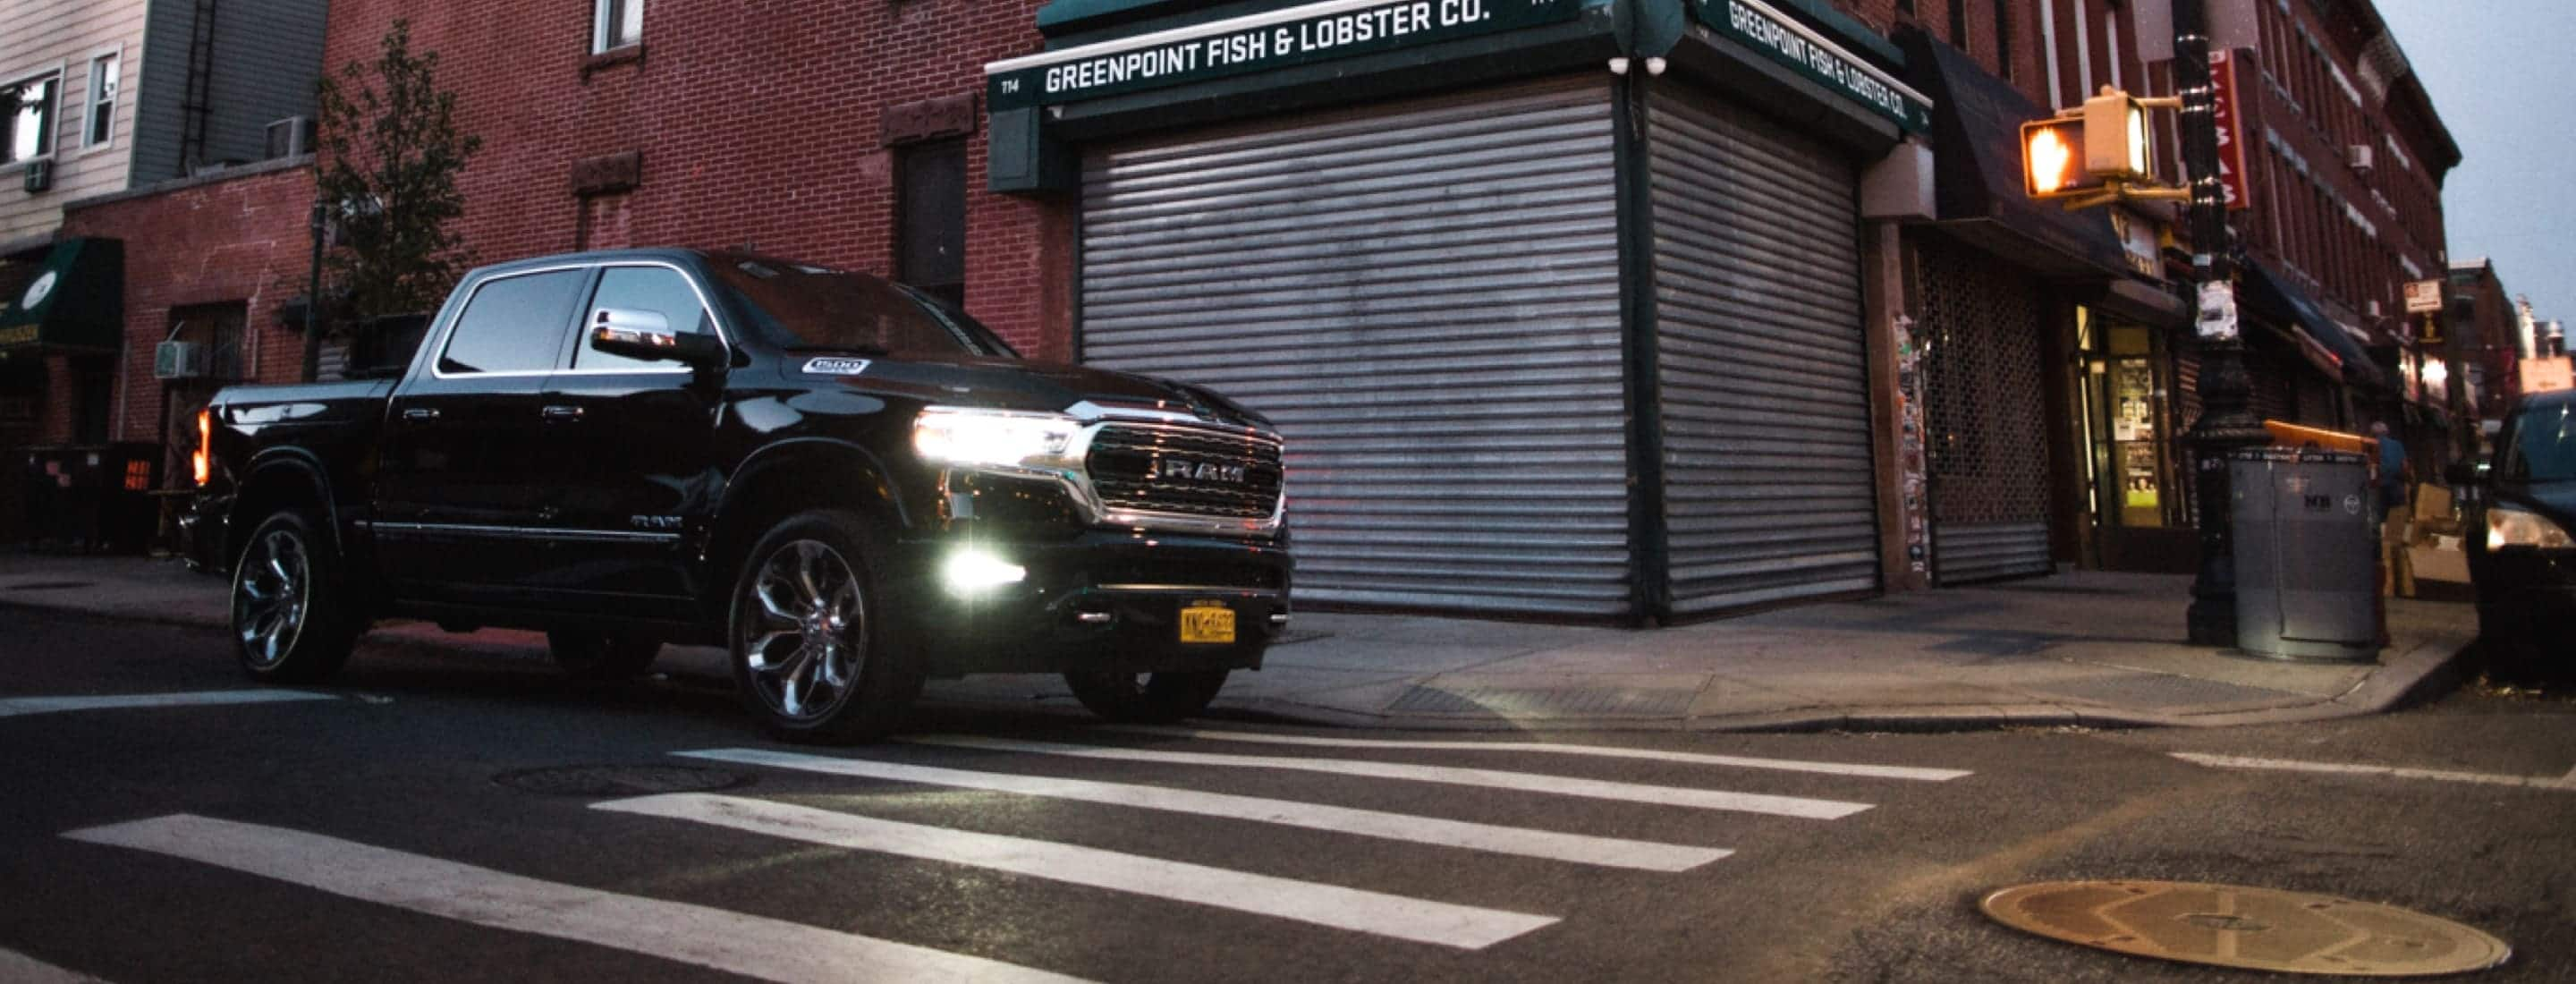 A 2019 Ram 1500 Limited parked on the curb beside Greenpoint Fish and Lobster Co.